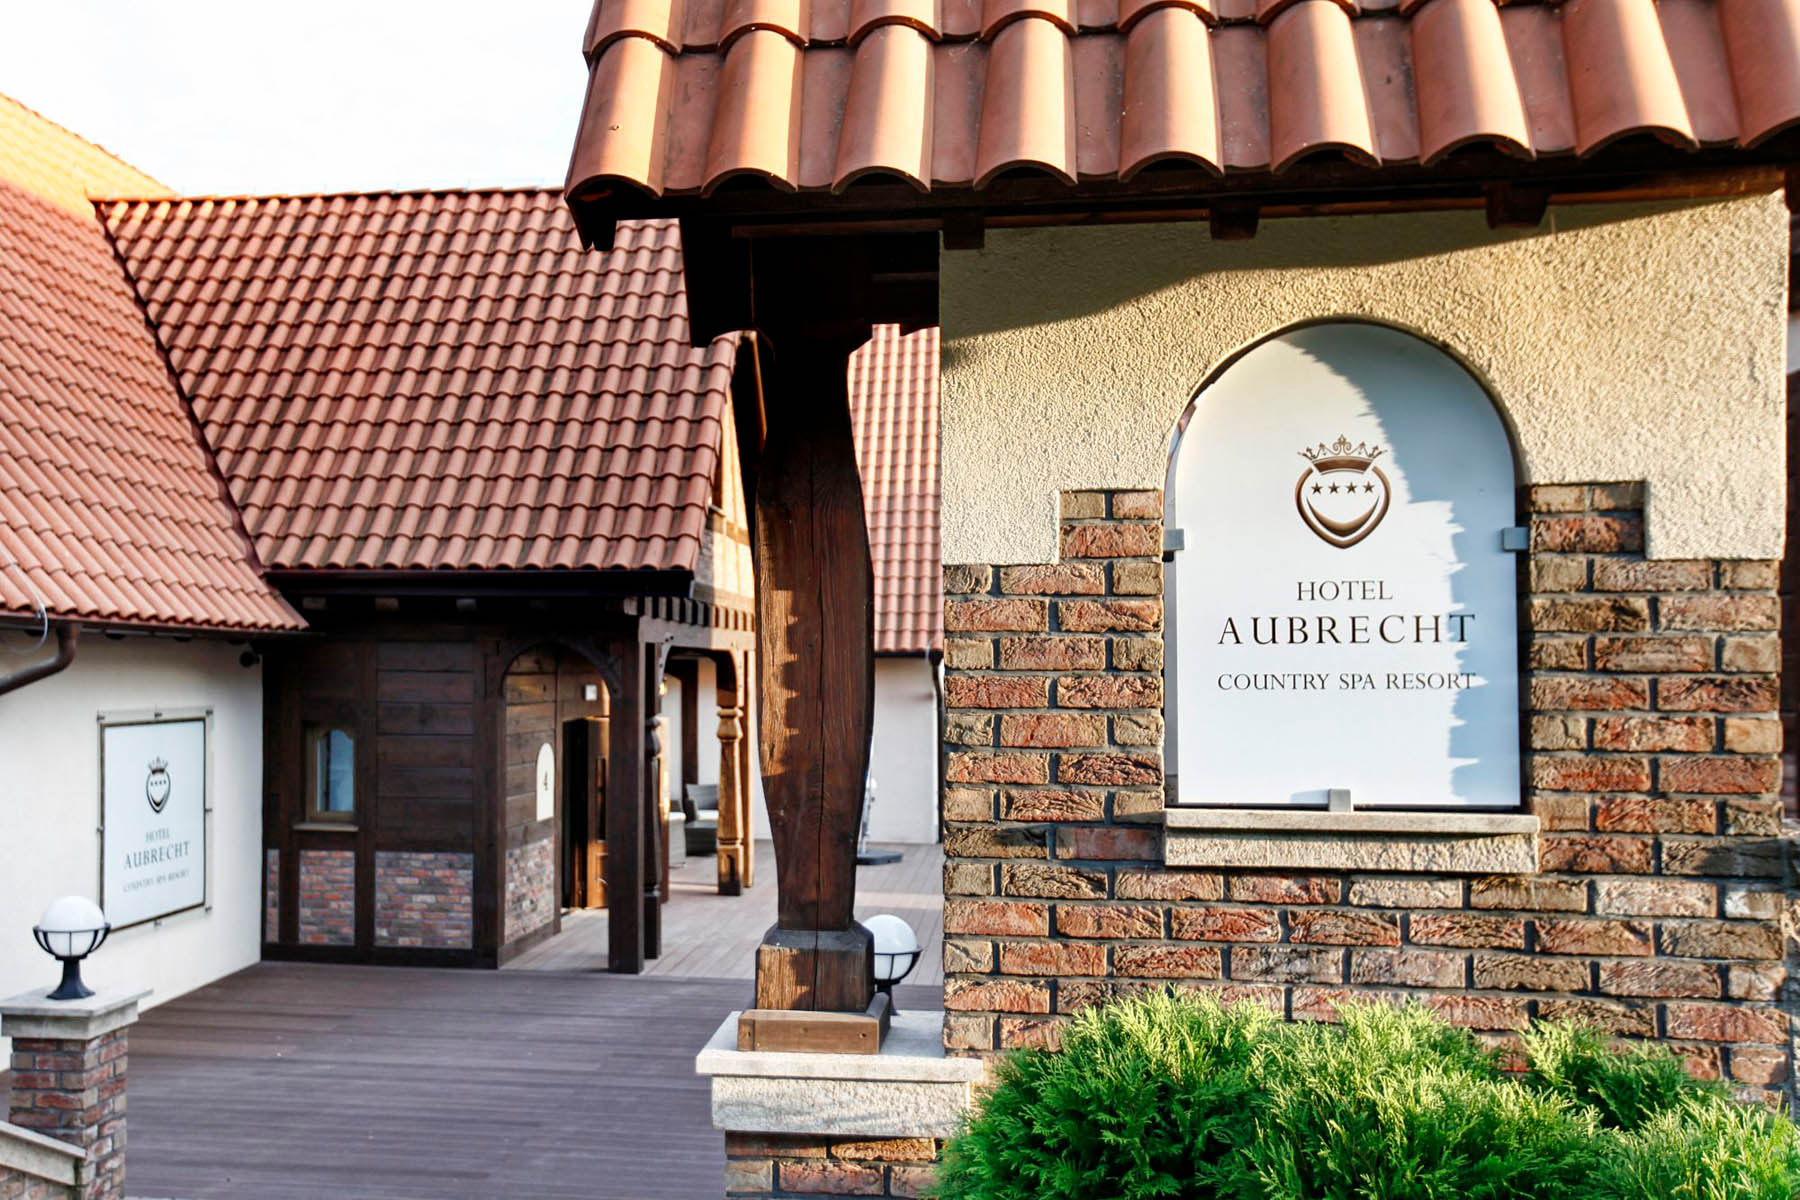 Resort close-up with logo at Hotel Aubrecht Country Spa